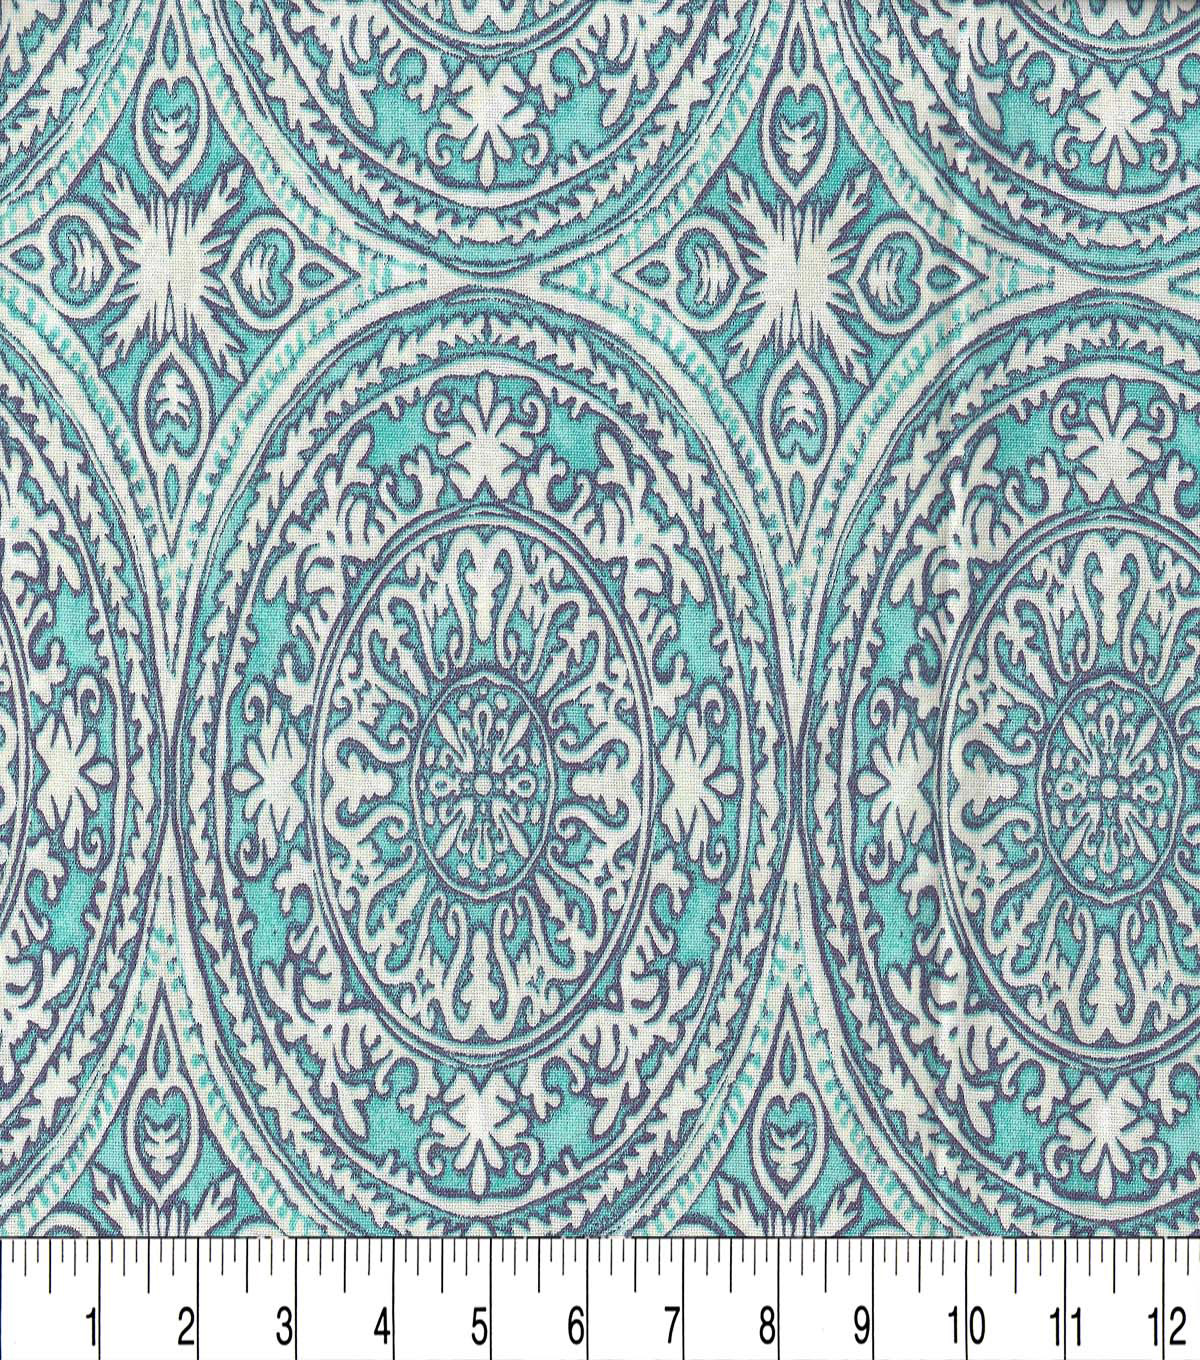 Keepsake Calico Cotton Fabric -Goshen Summer